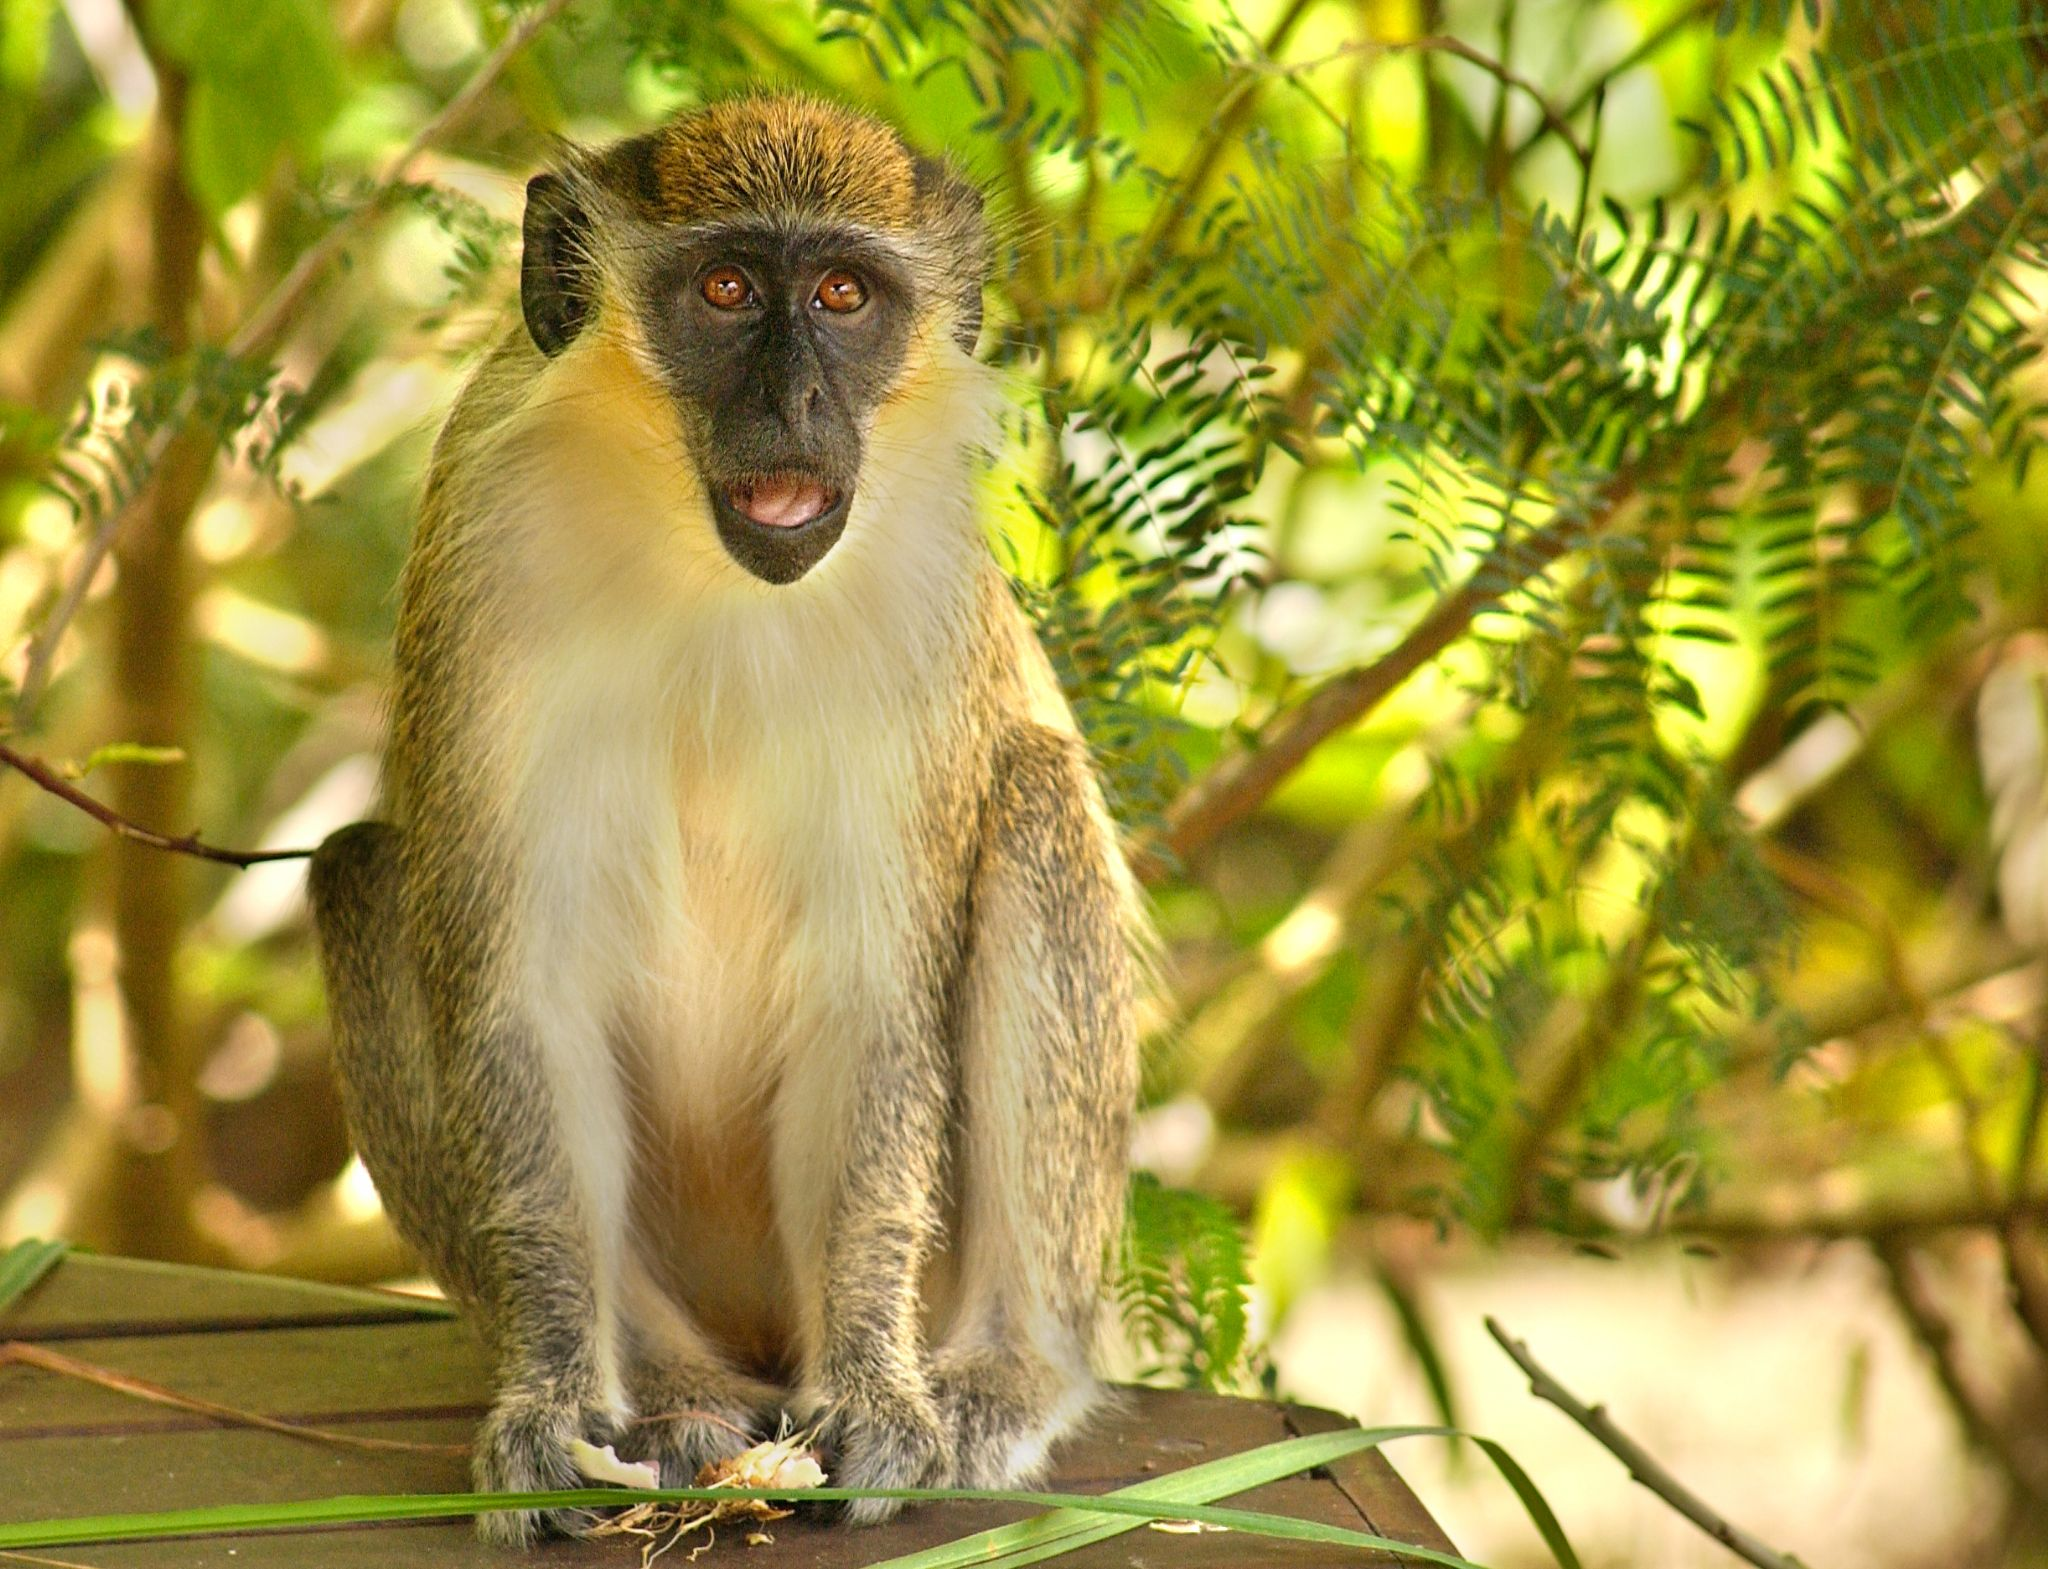 Barbados Monkey by Pat Bell